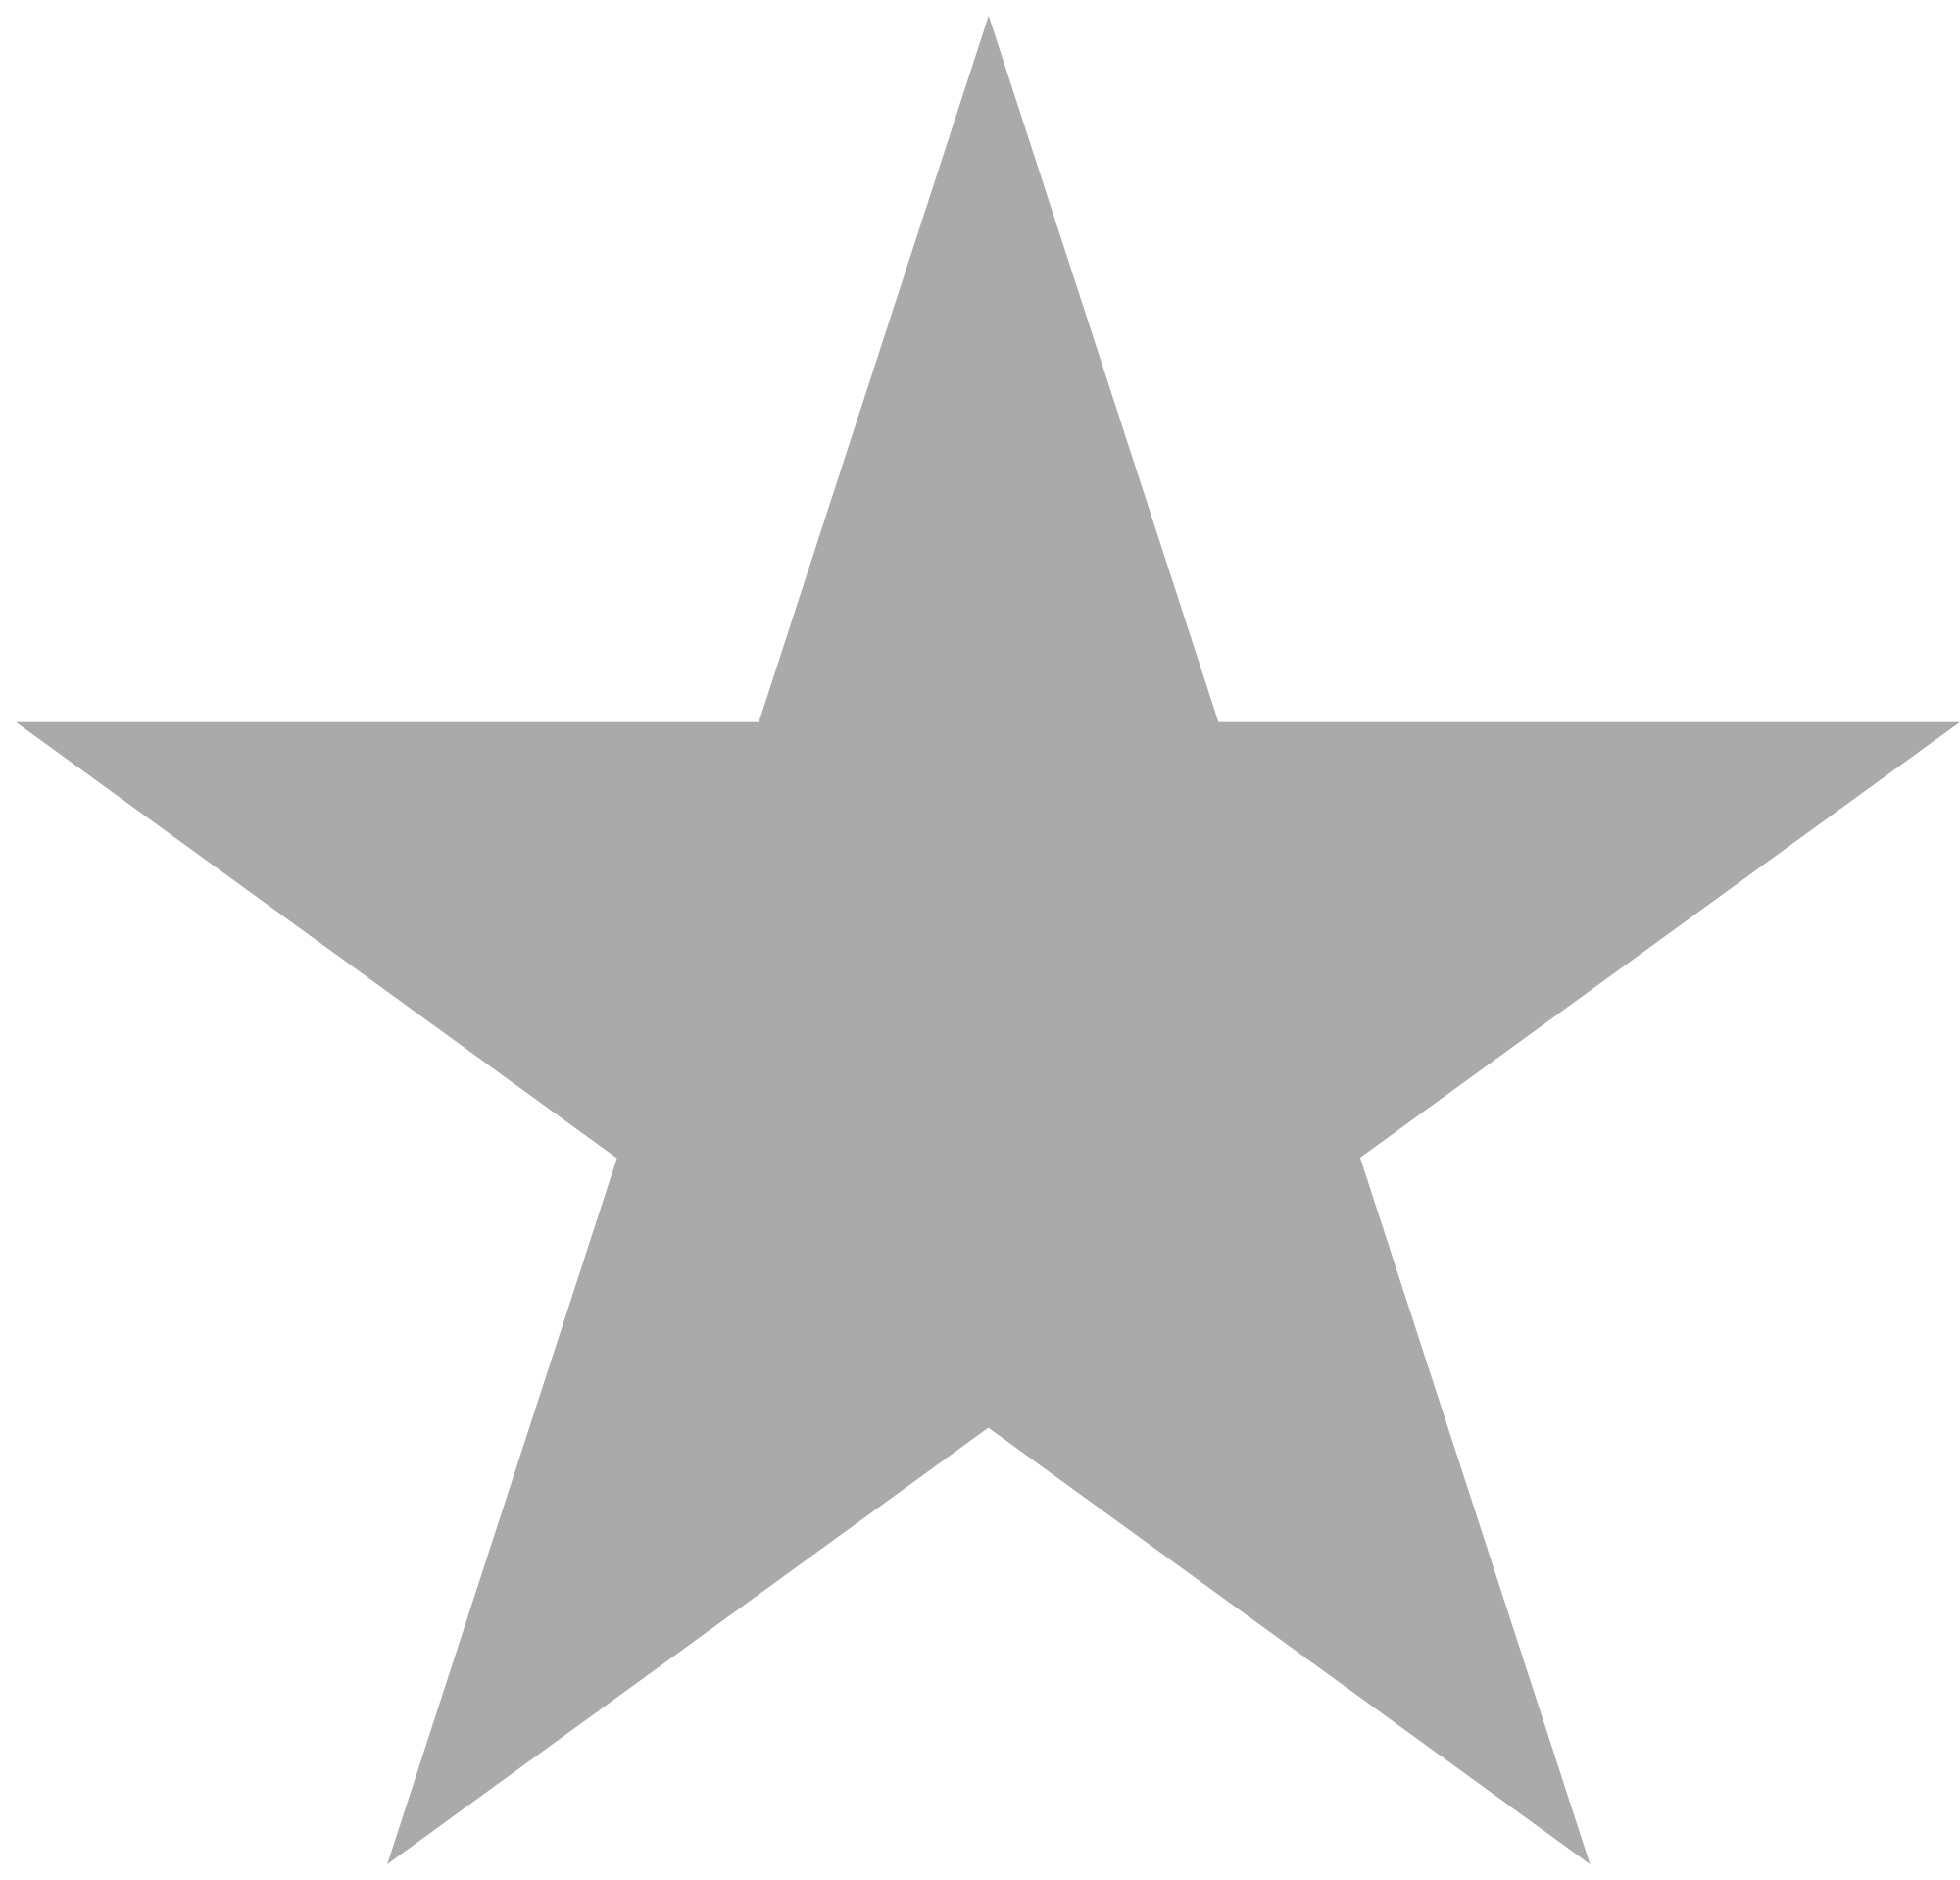 White star png transparent background. Grey image purepng free